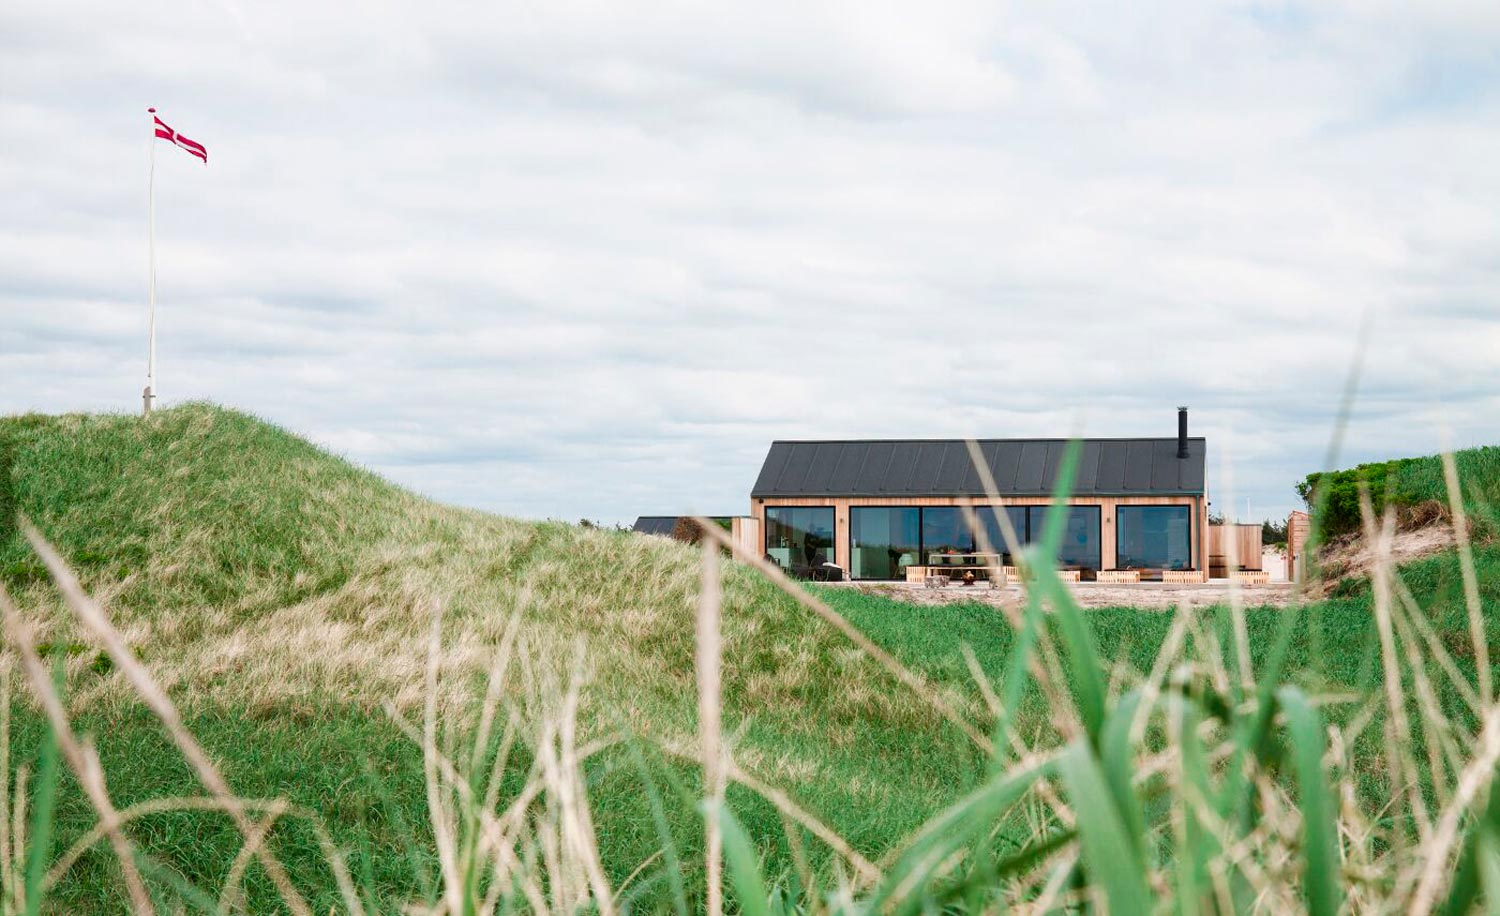 Herthasvej Grønhøj - Exclusive refurbishment to North Sea weekend cottage